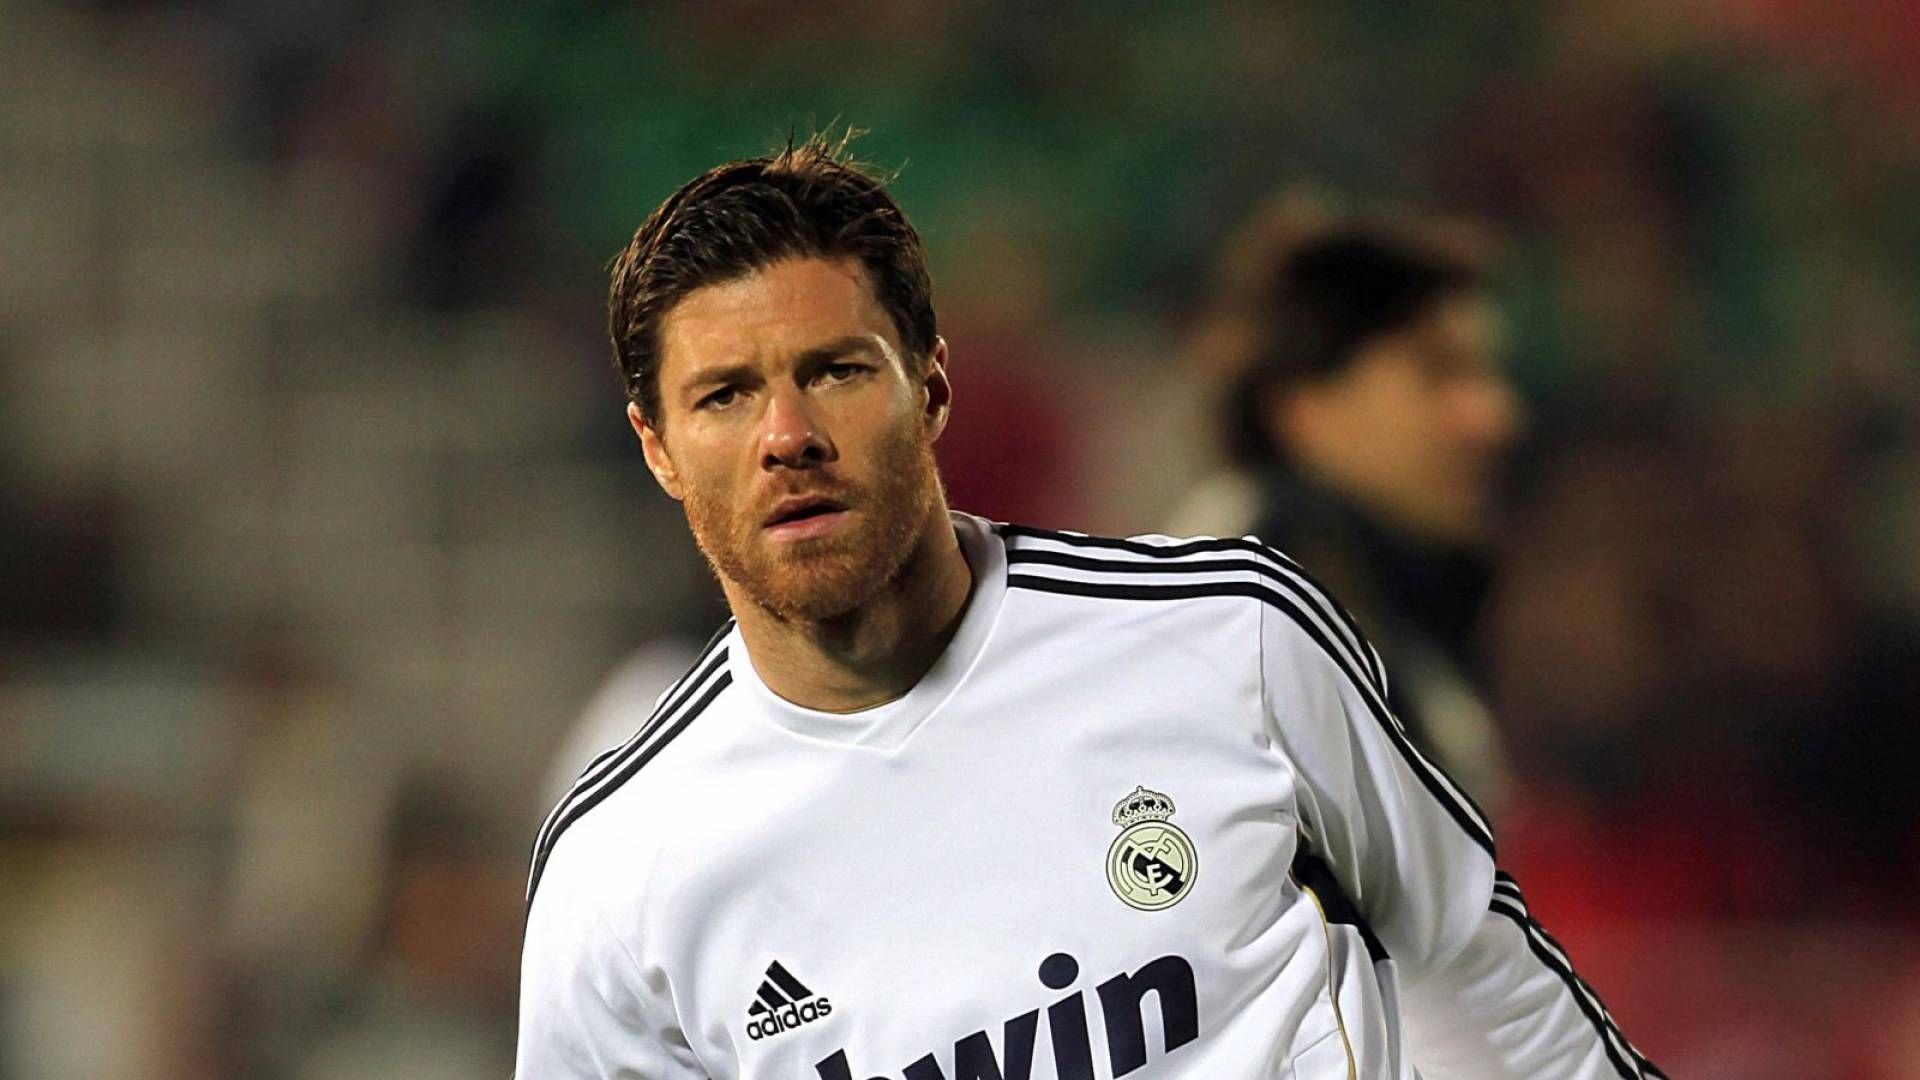 Xabi Alonso Real Madrid El MAS Grande Pinterest Football